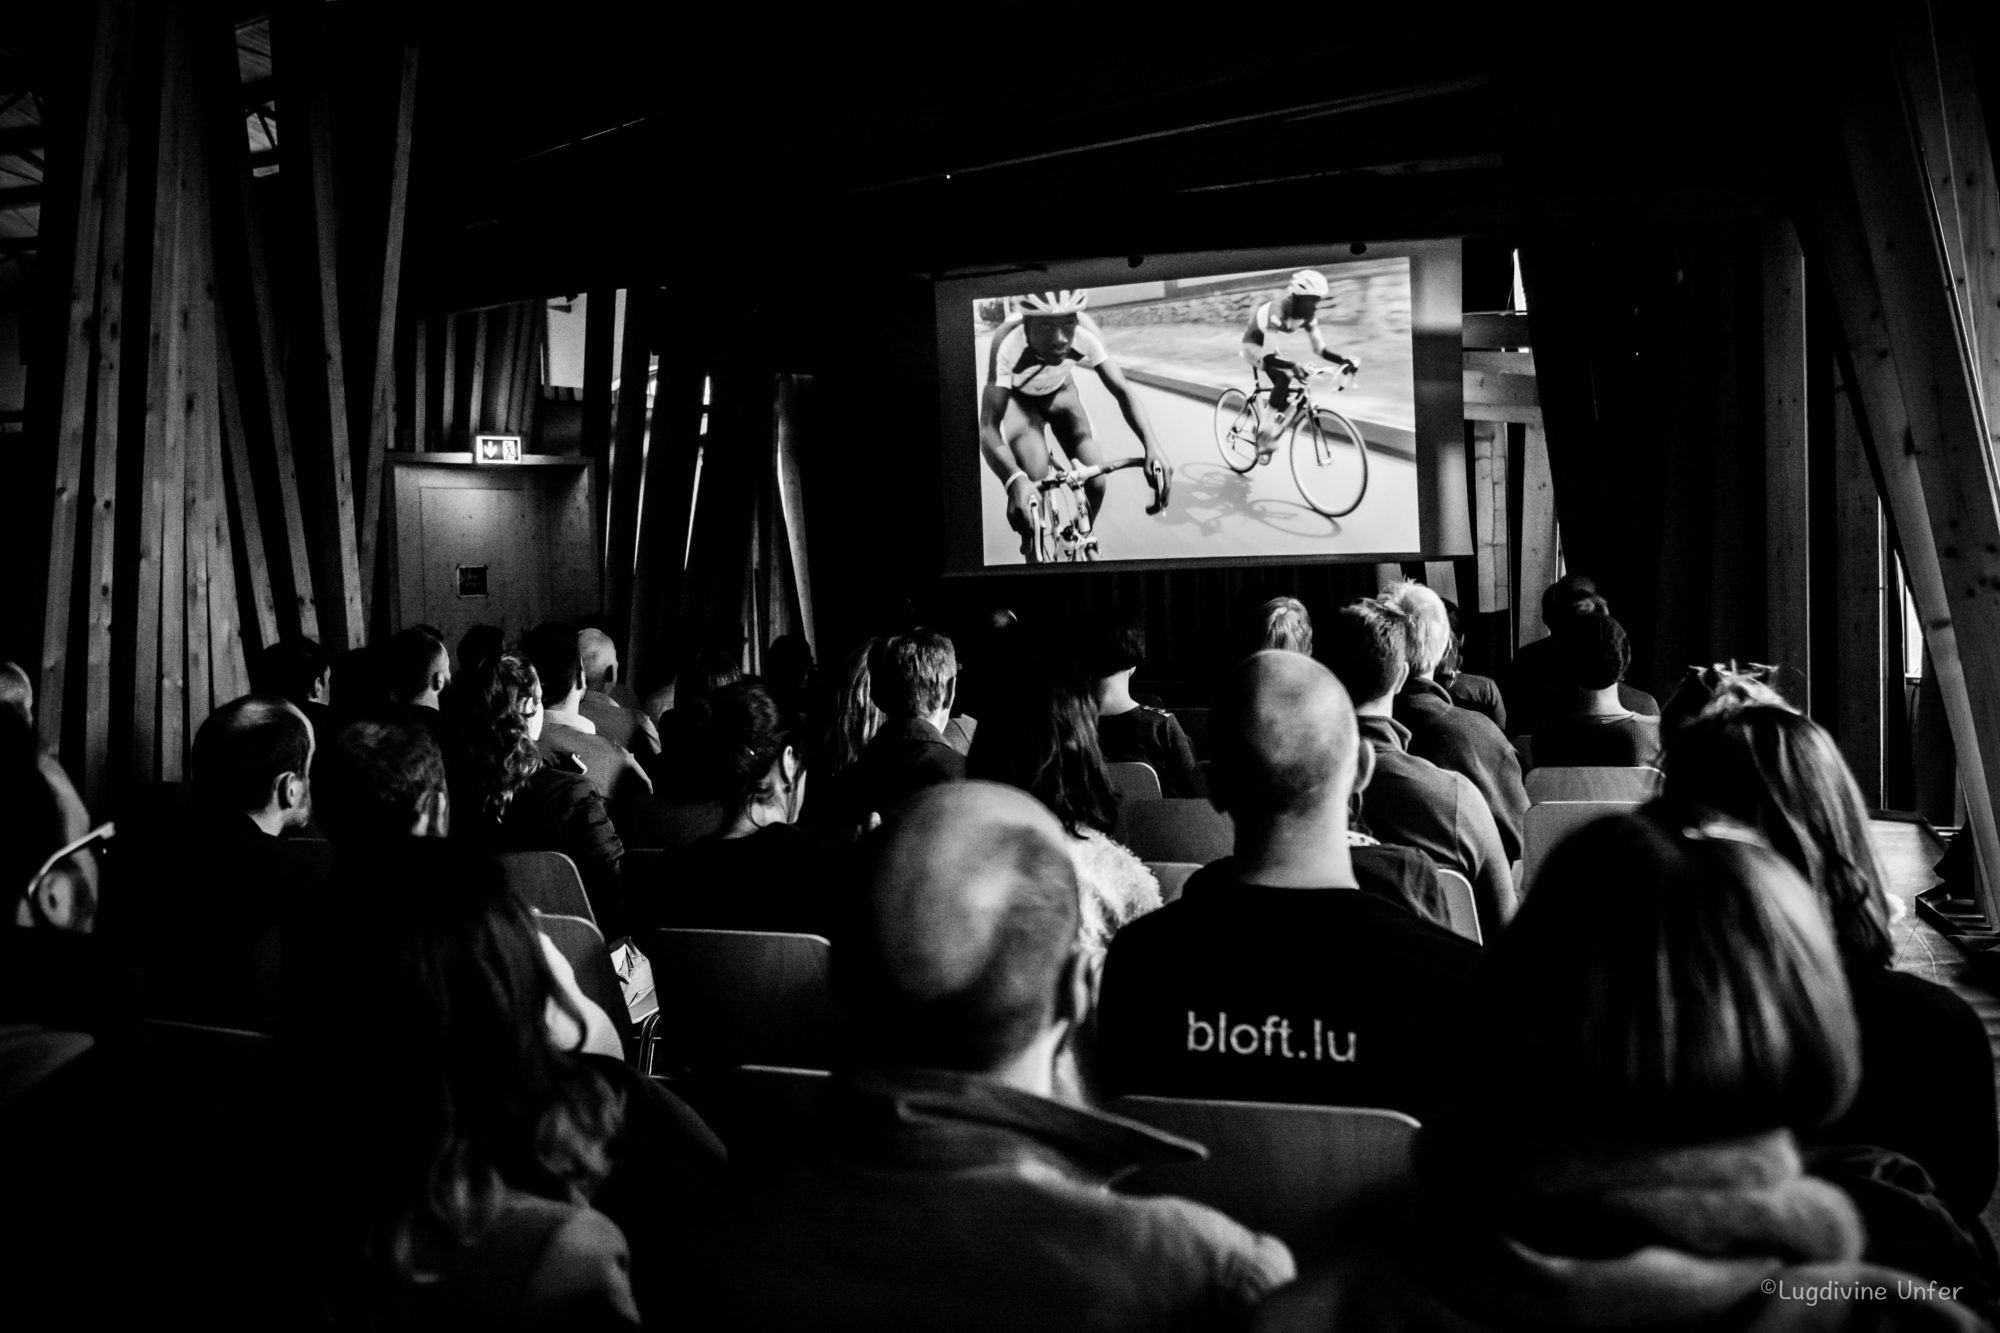 B_W-Bloft-FilmNight-Rotondes-Luxembourg-27042017-by-Lugdivine-Unfer-51